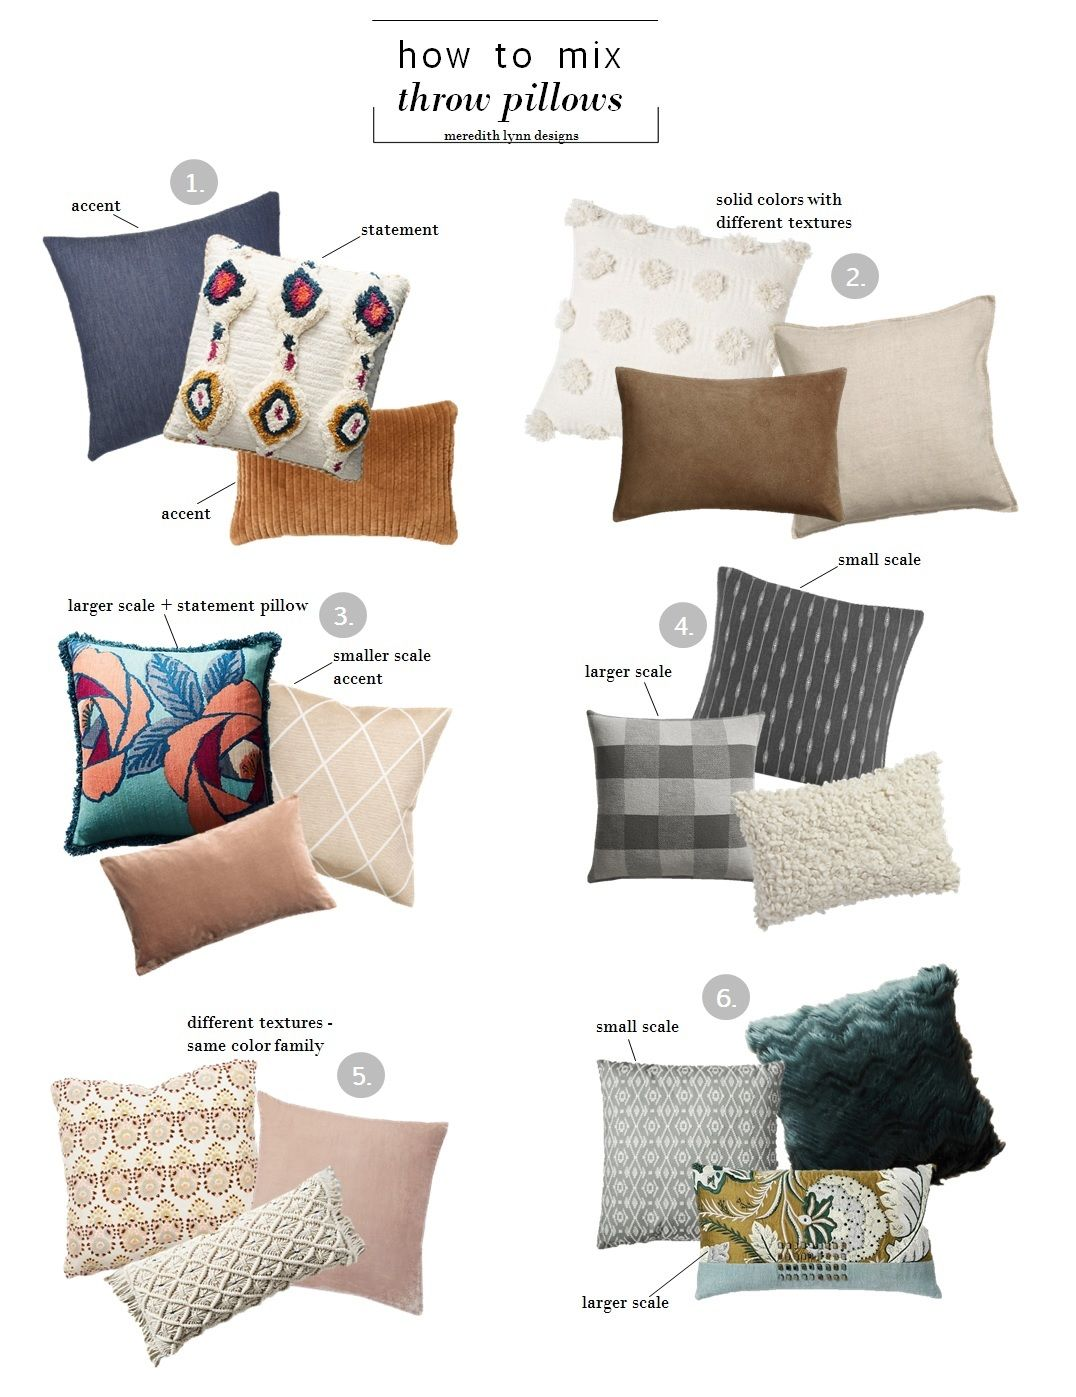 HOW TO MIX THROW PILLOWS — MEREDITH LYNN DESIGNS